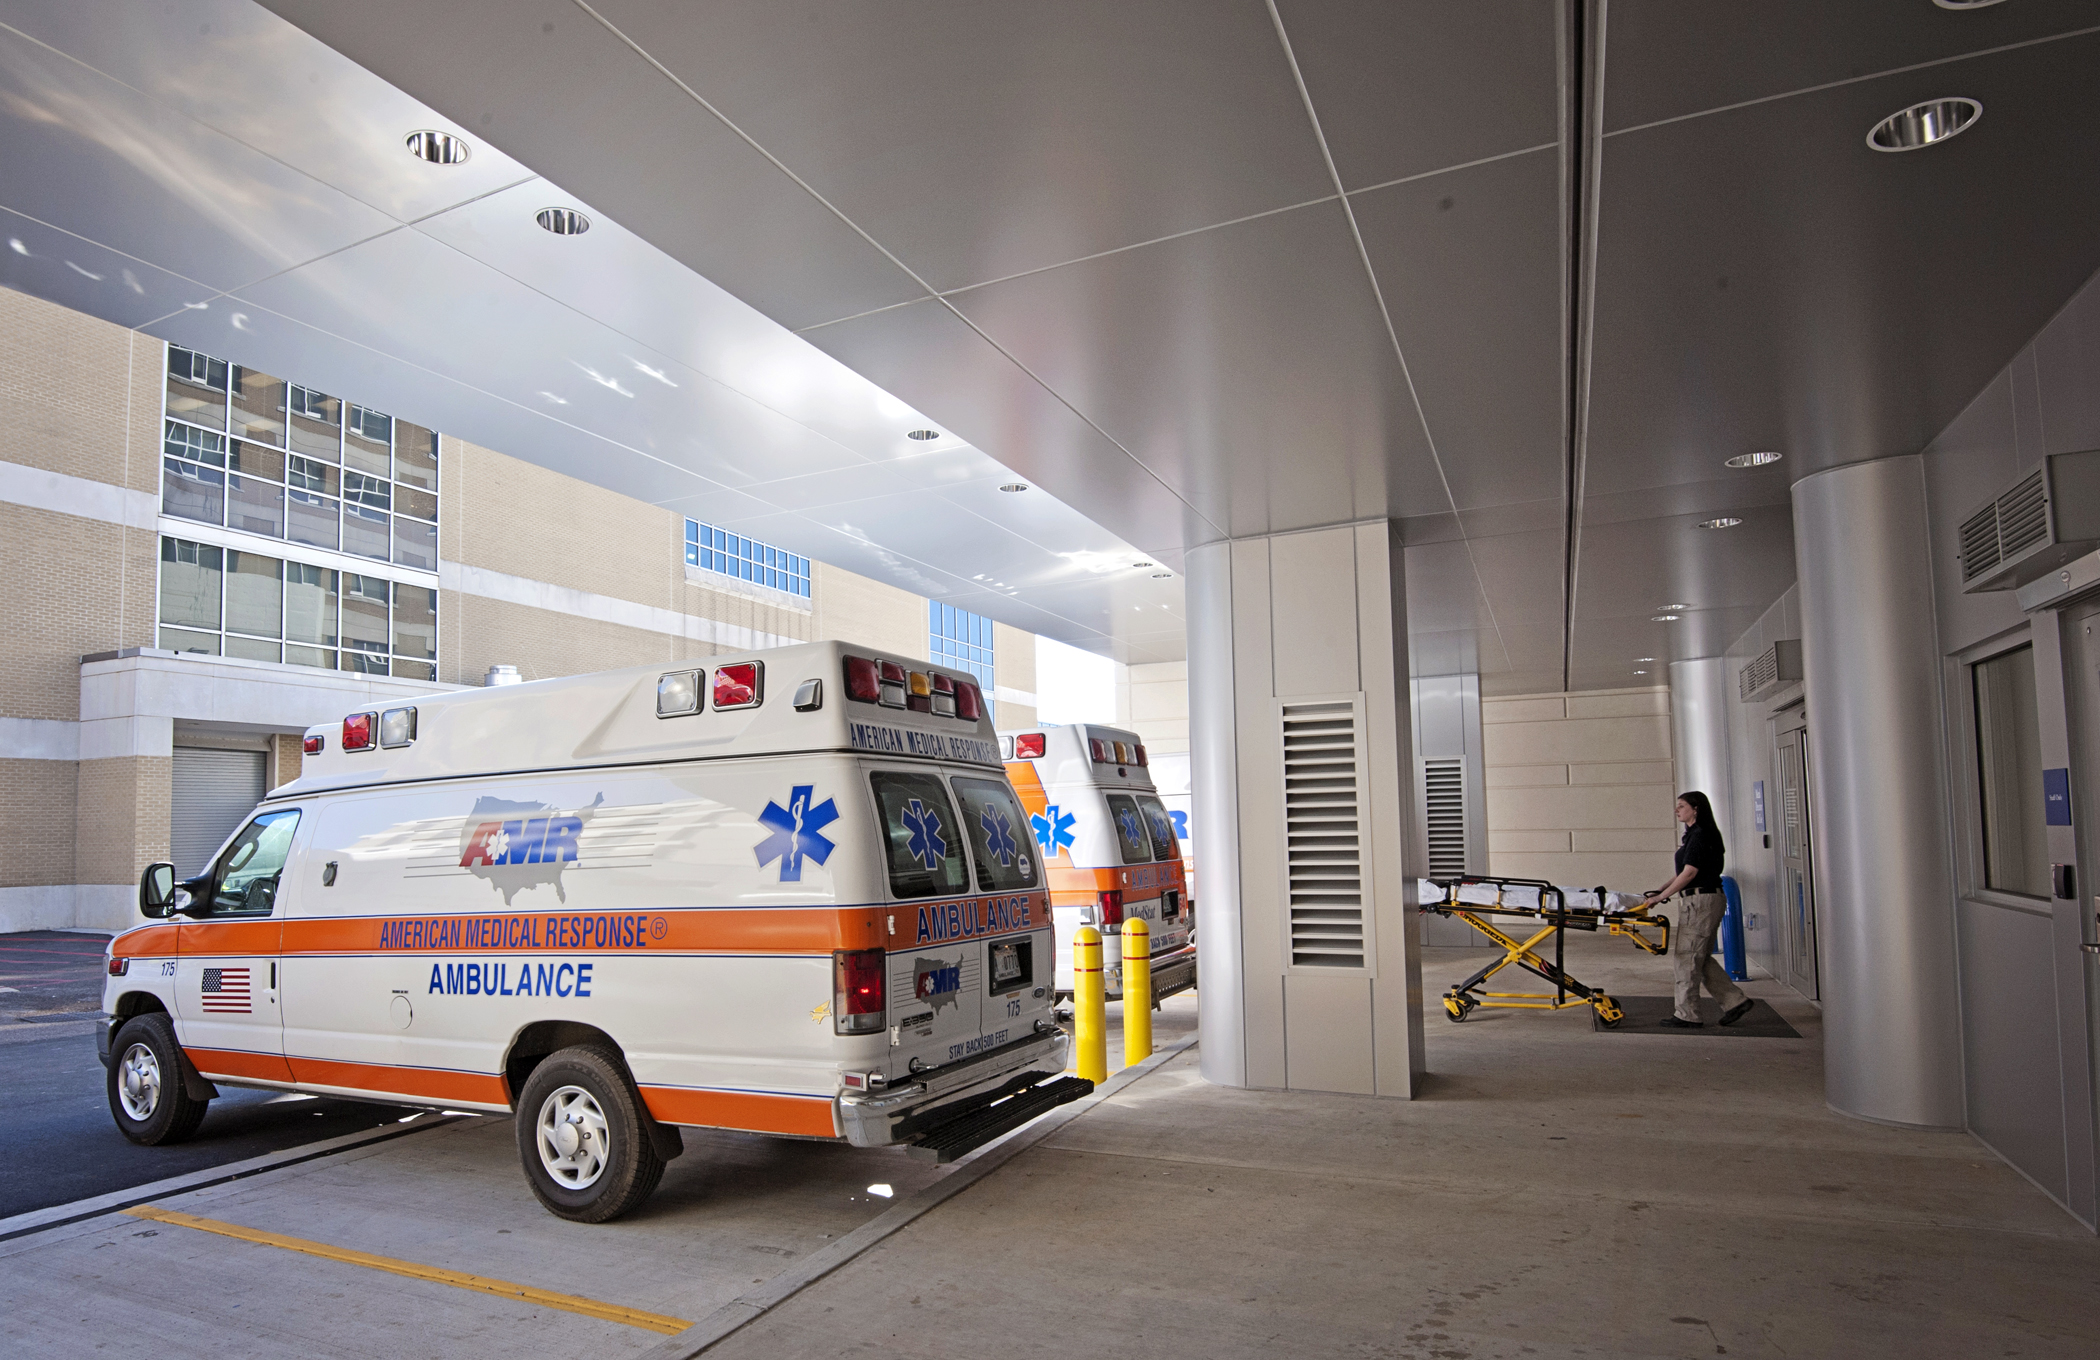 American Medical Response (AMR) ambulances